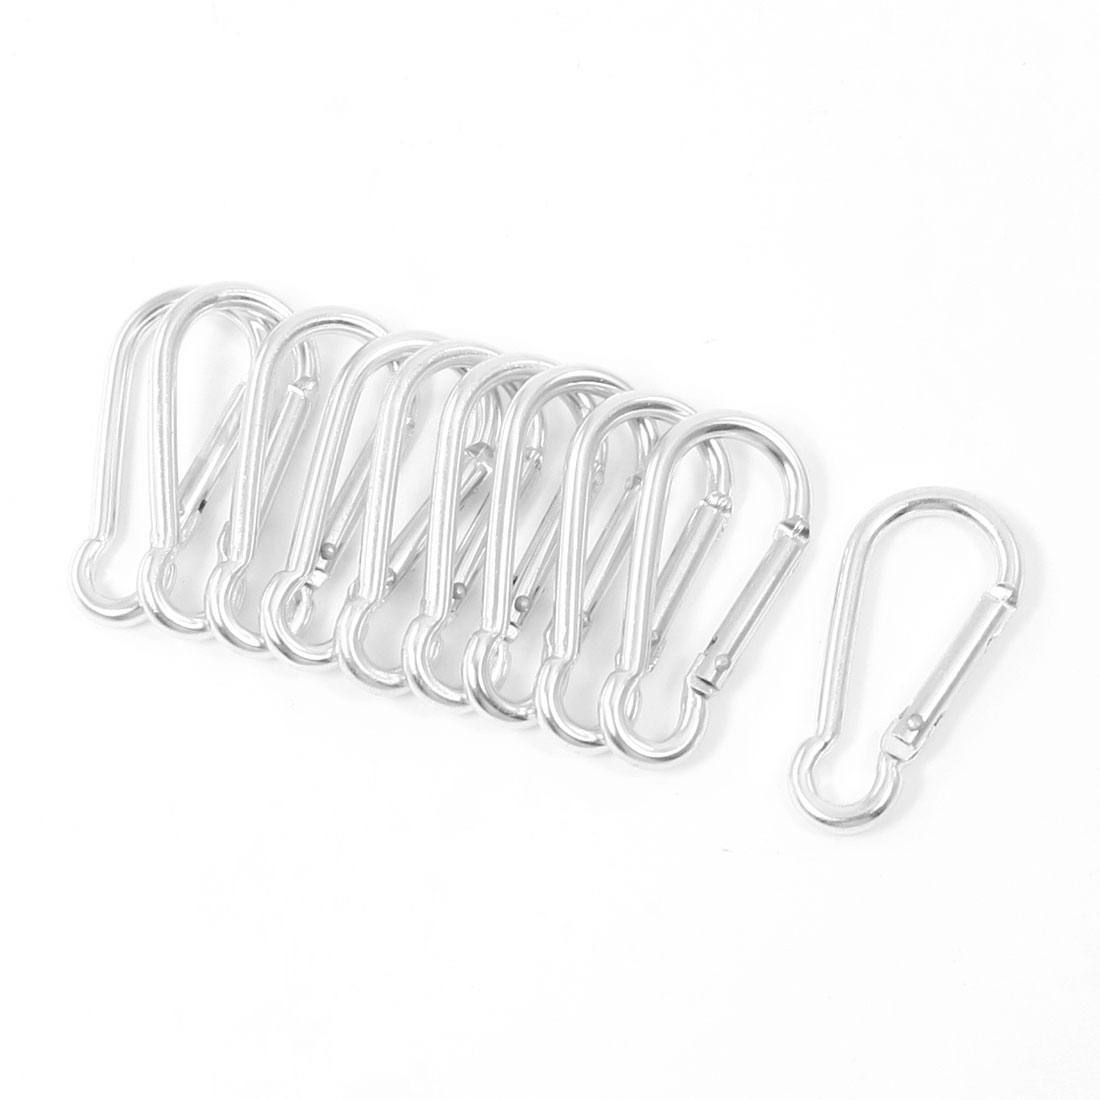 10 Pcs Silver Tone Spring Loaded Gate Screw Lock Carabiner